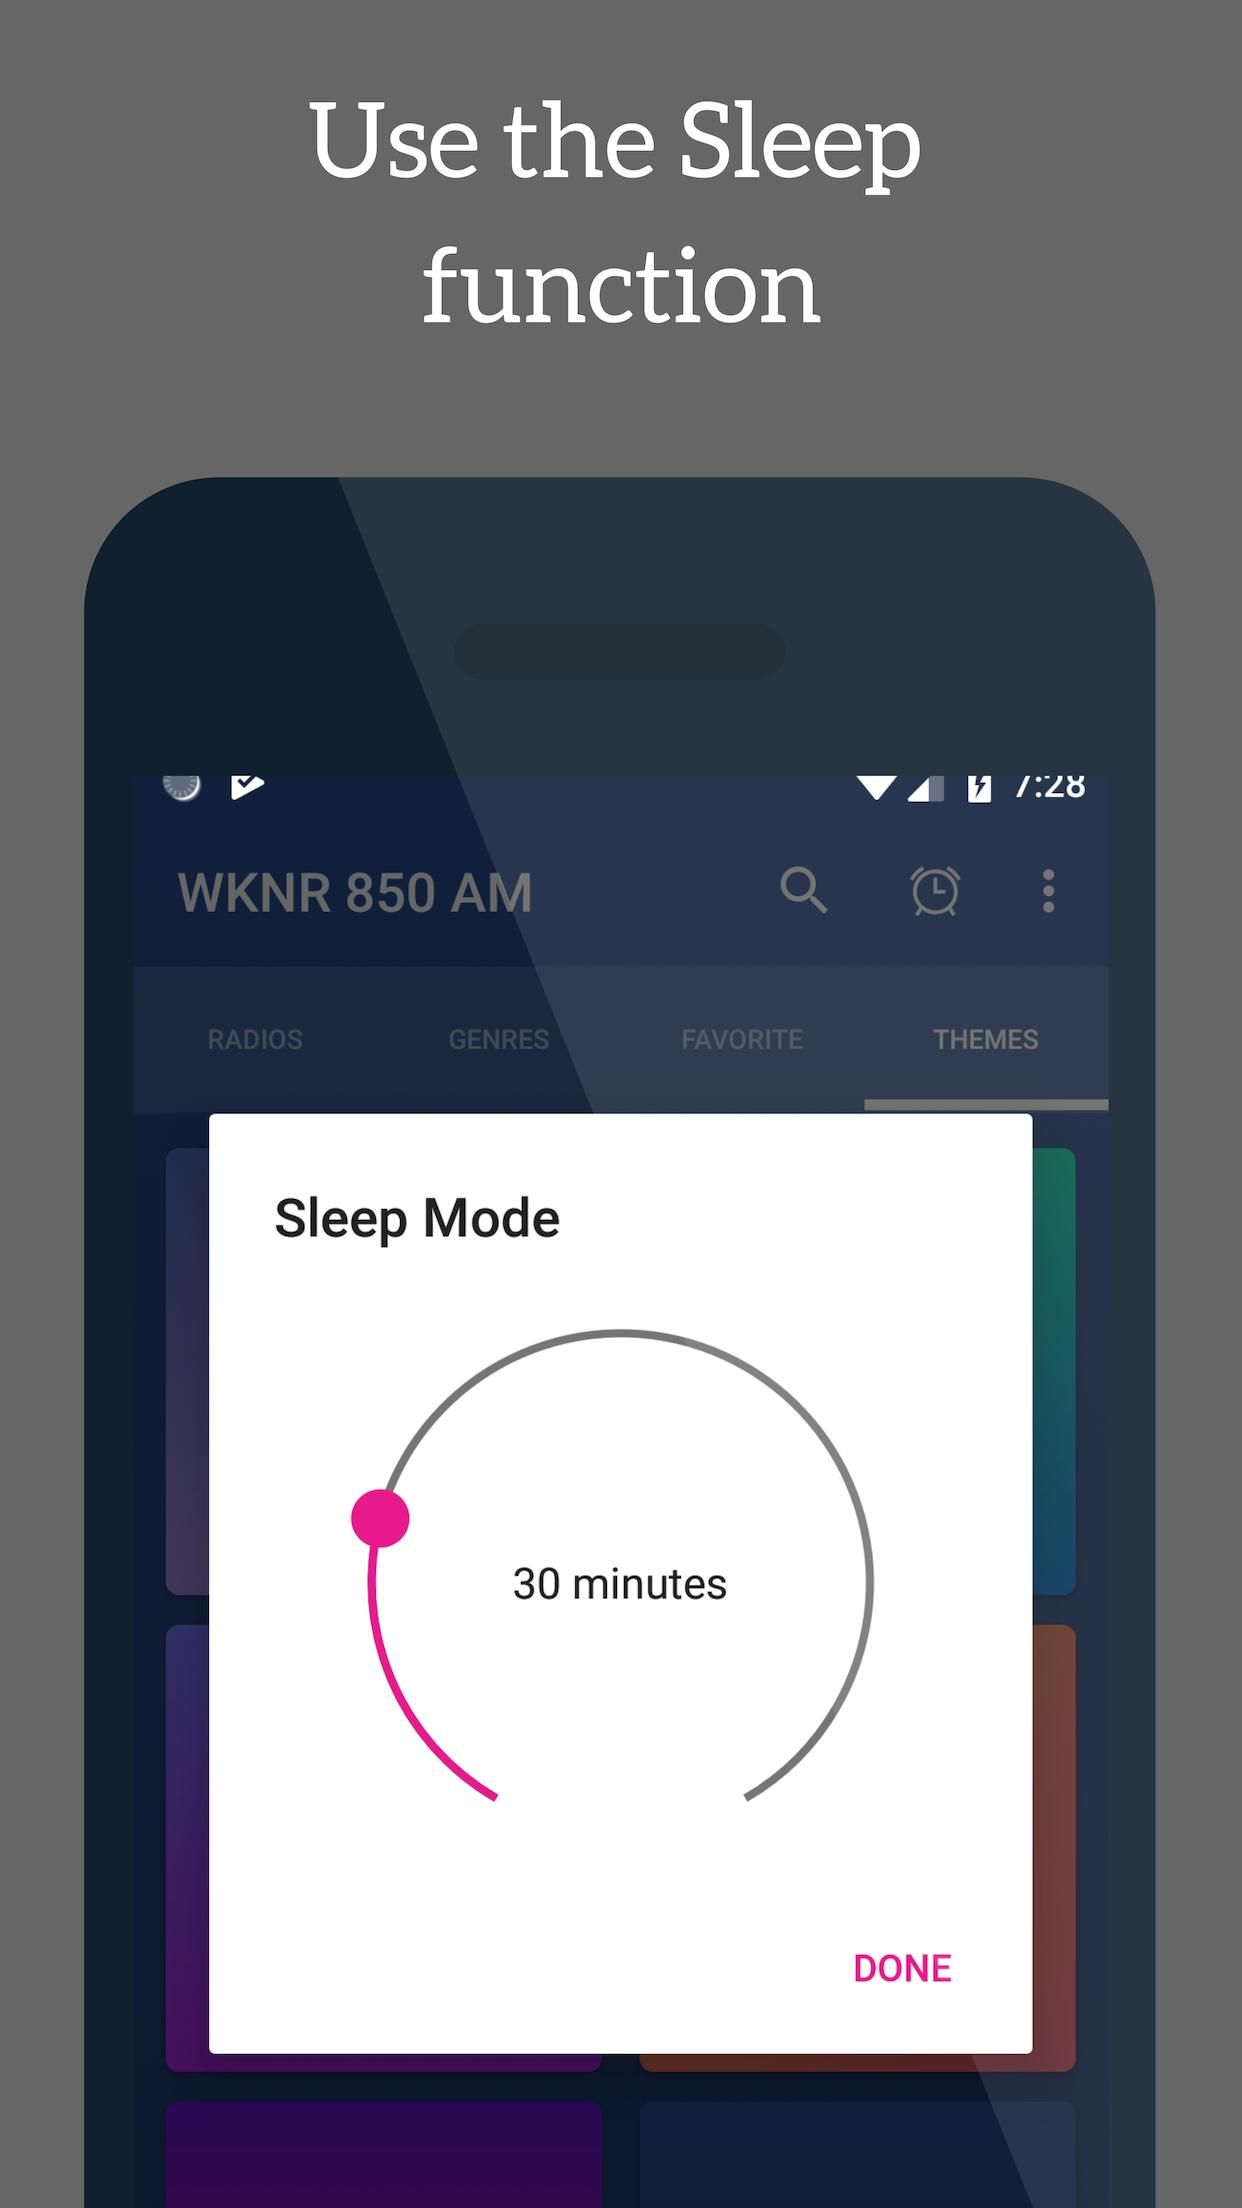 Wknr 850 Am Sports Radio Station Cleveland Ohio For Android Apk Download